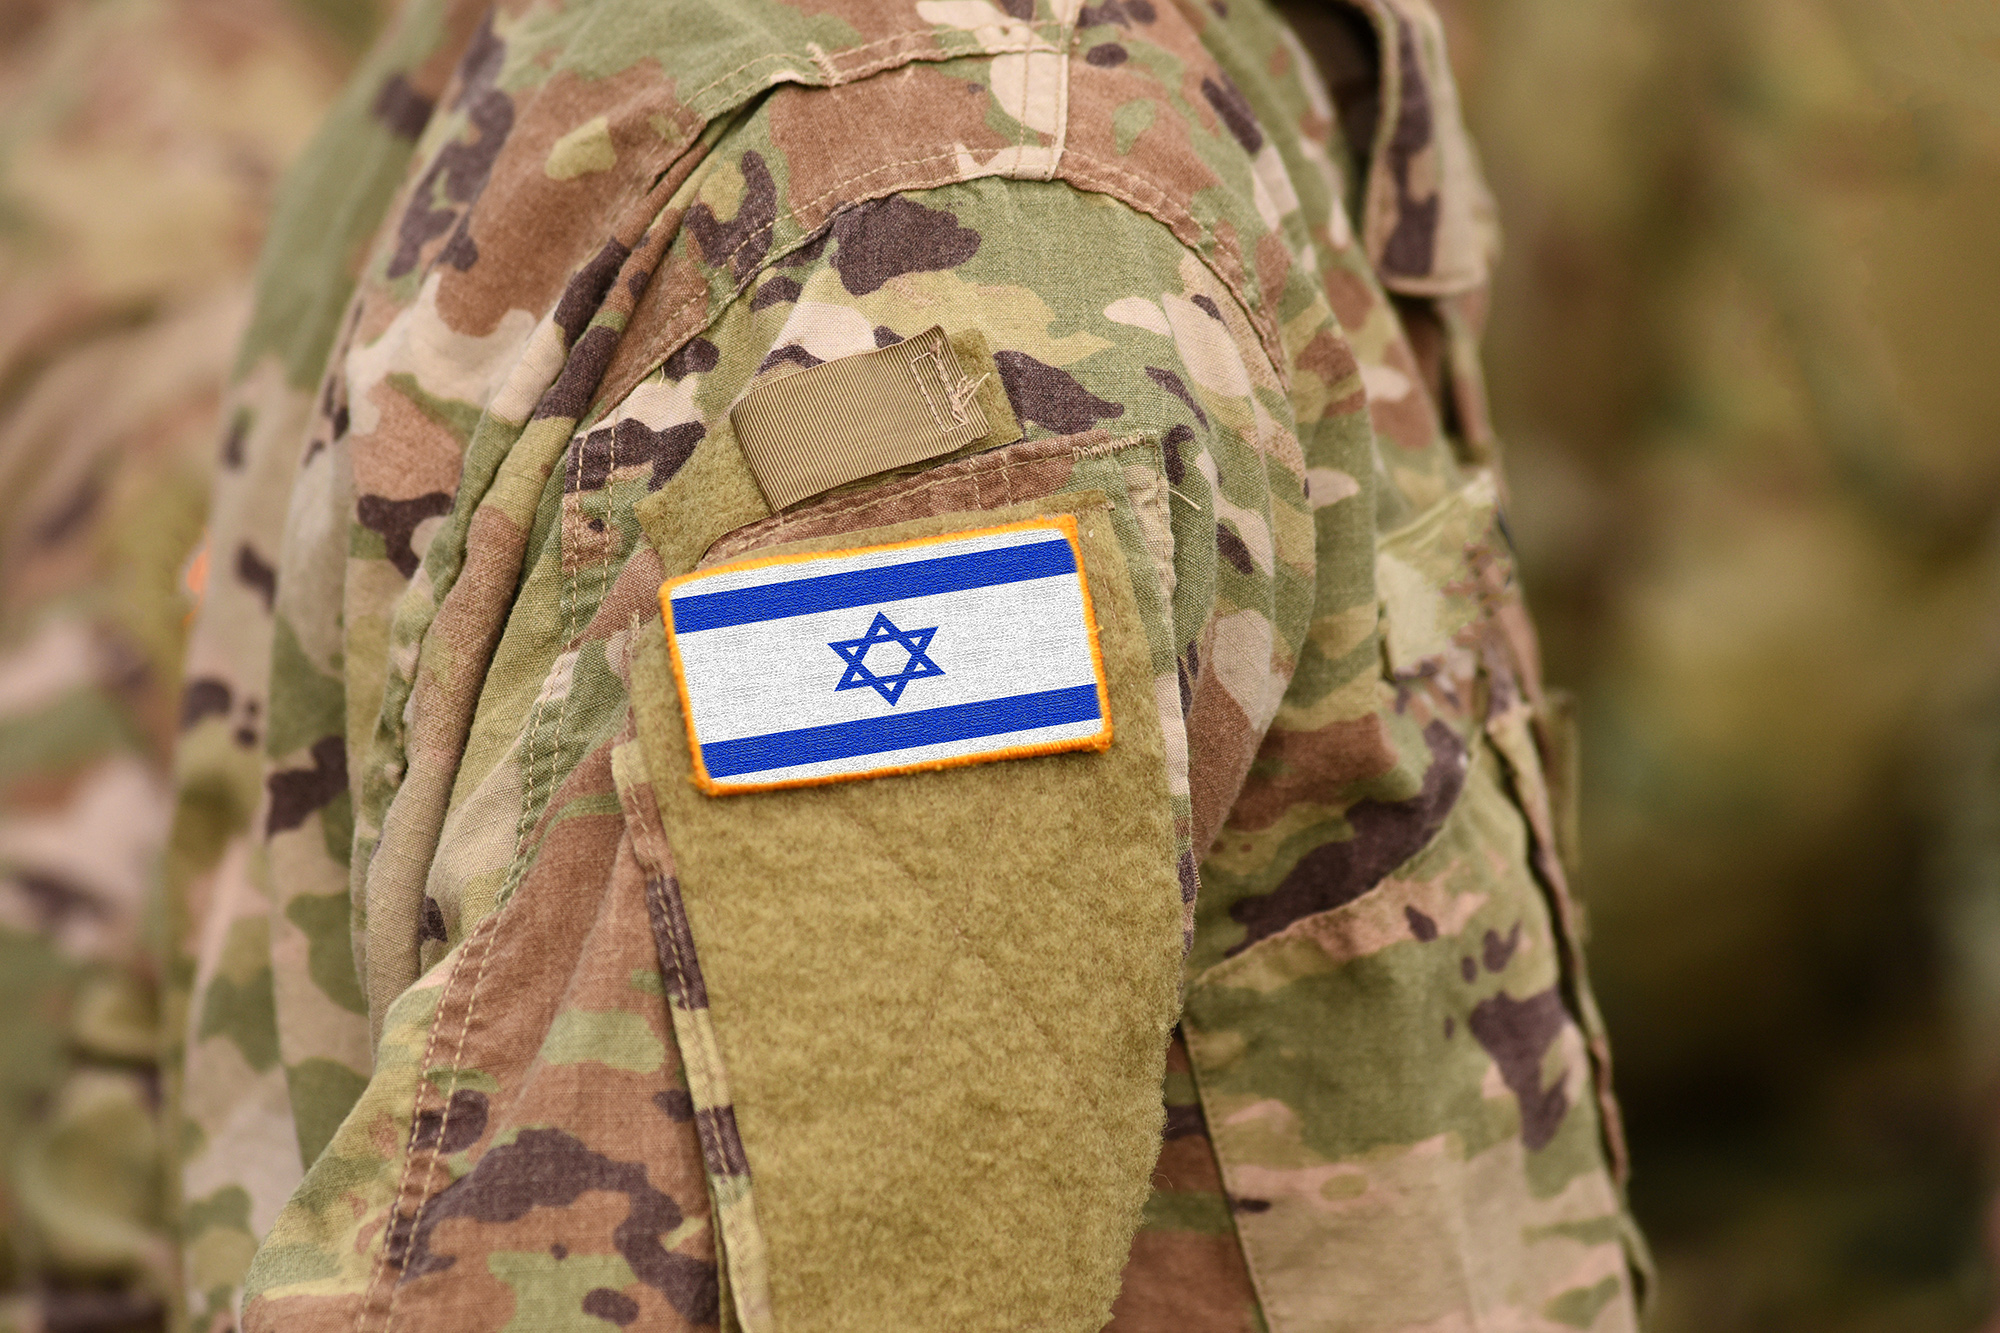 Israeli-defense-forces-idf-soldier-flag-